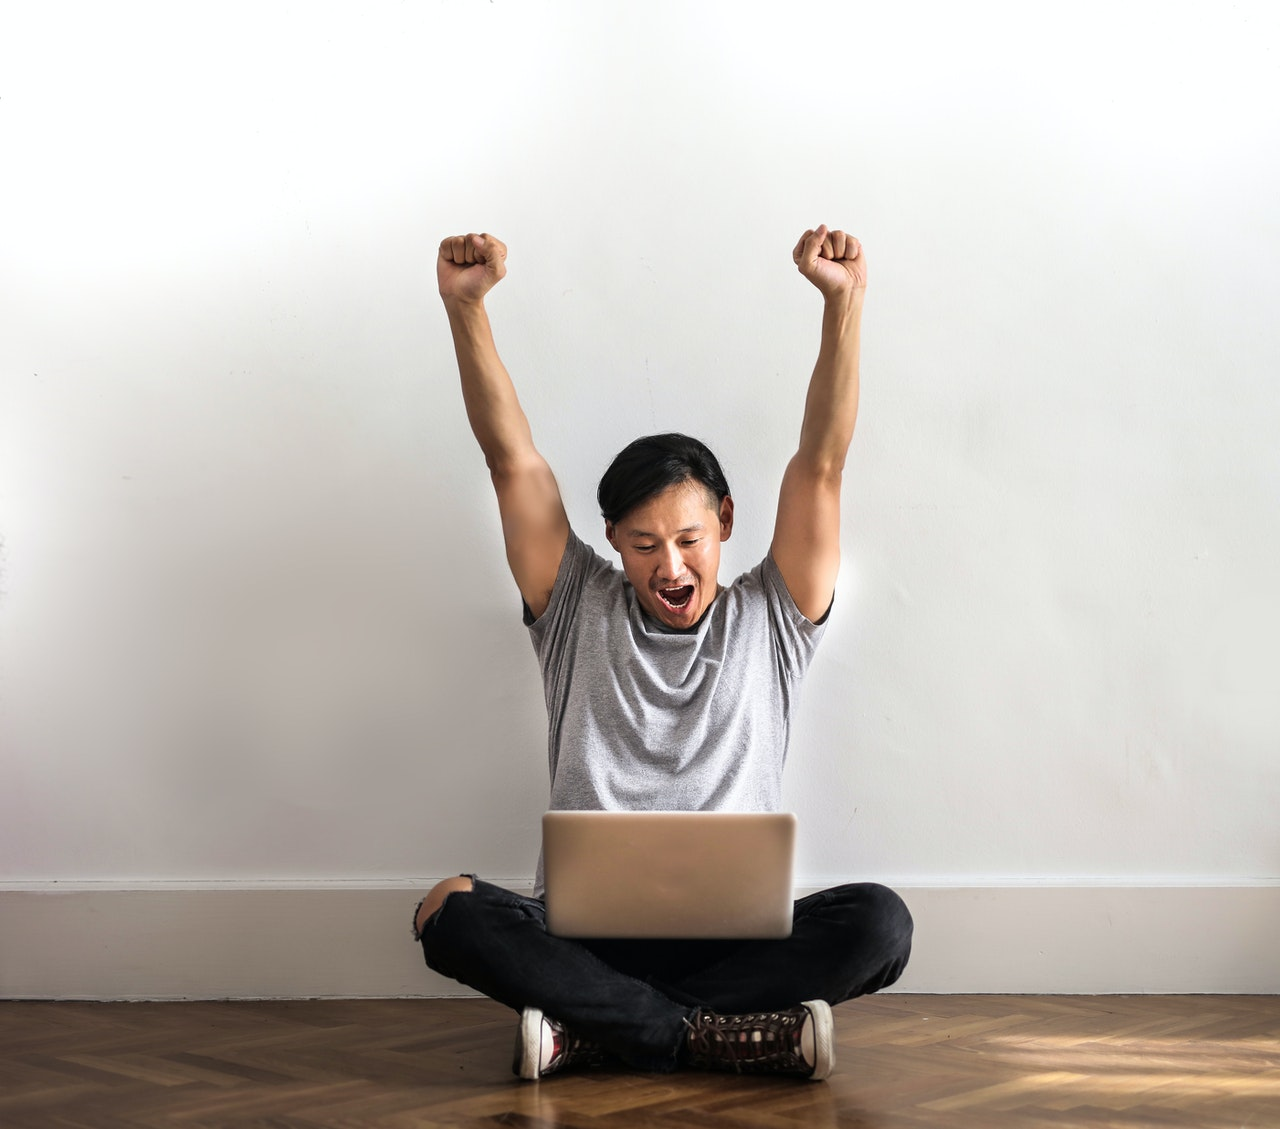 man cheering stretching arms up